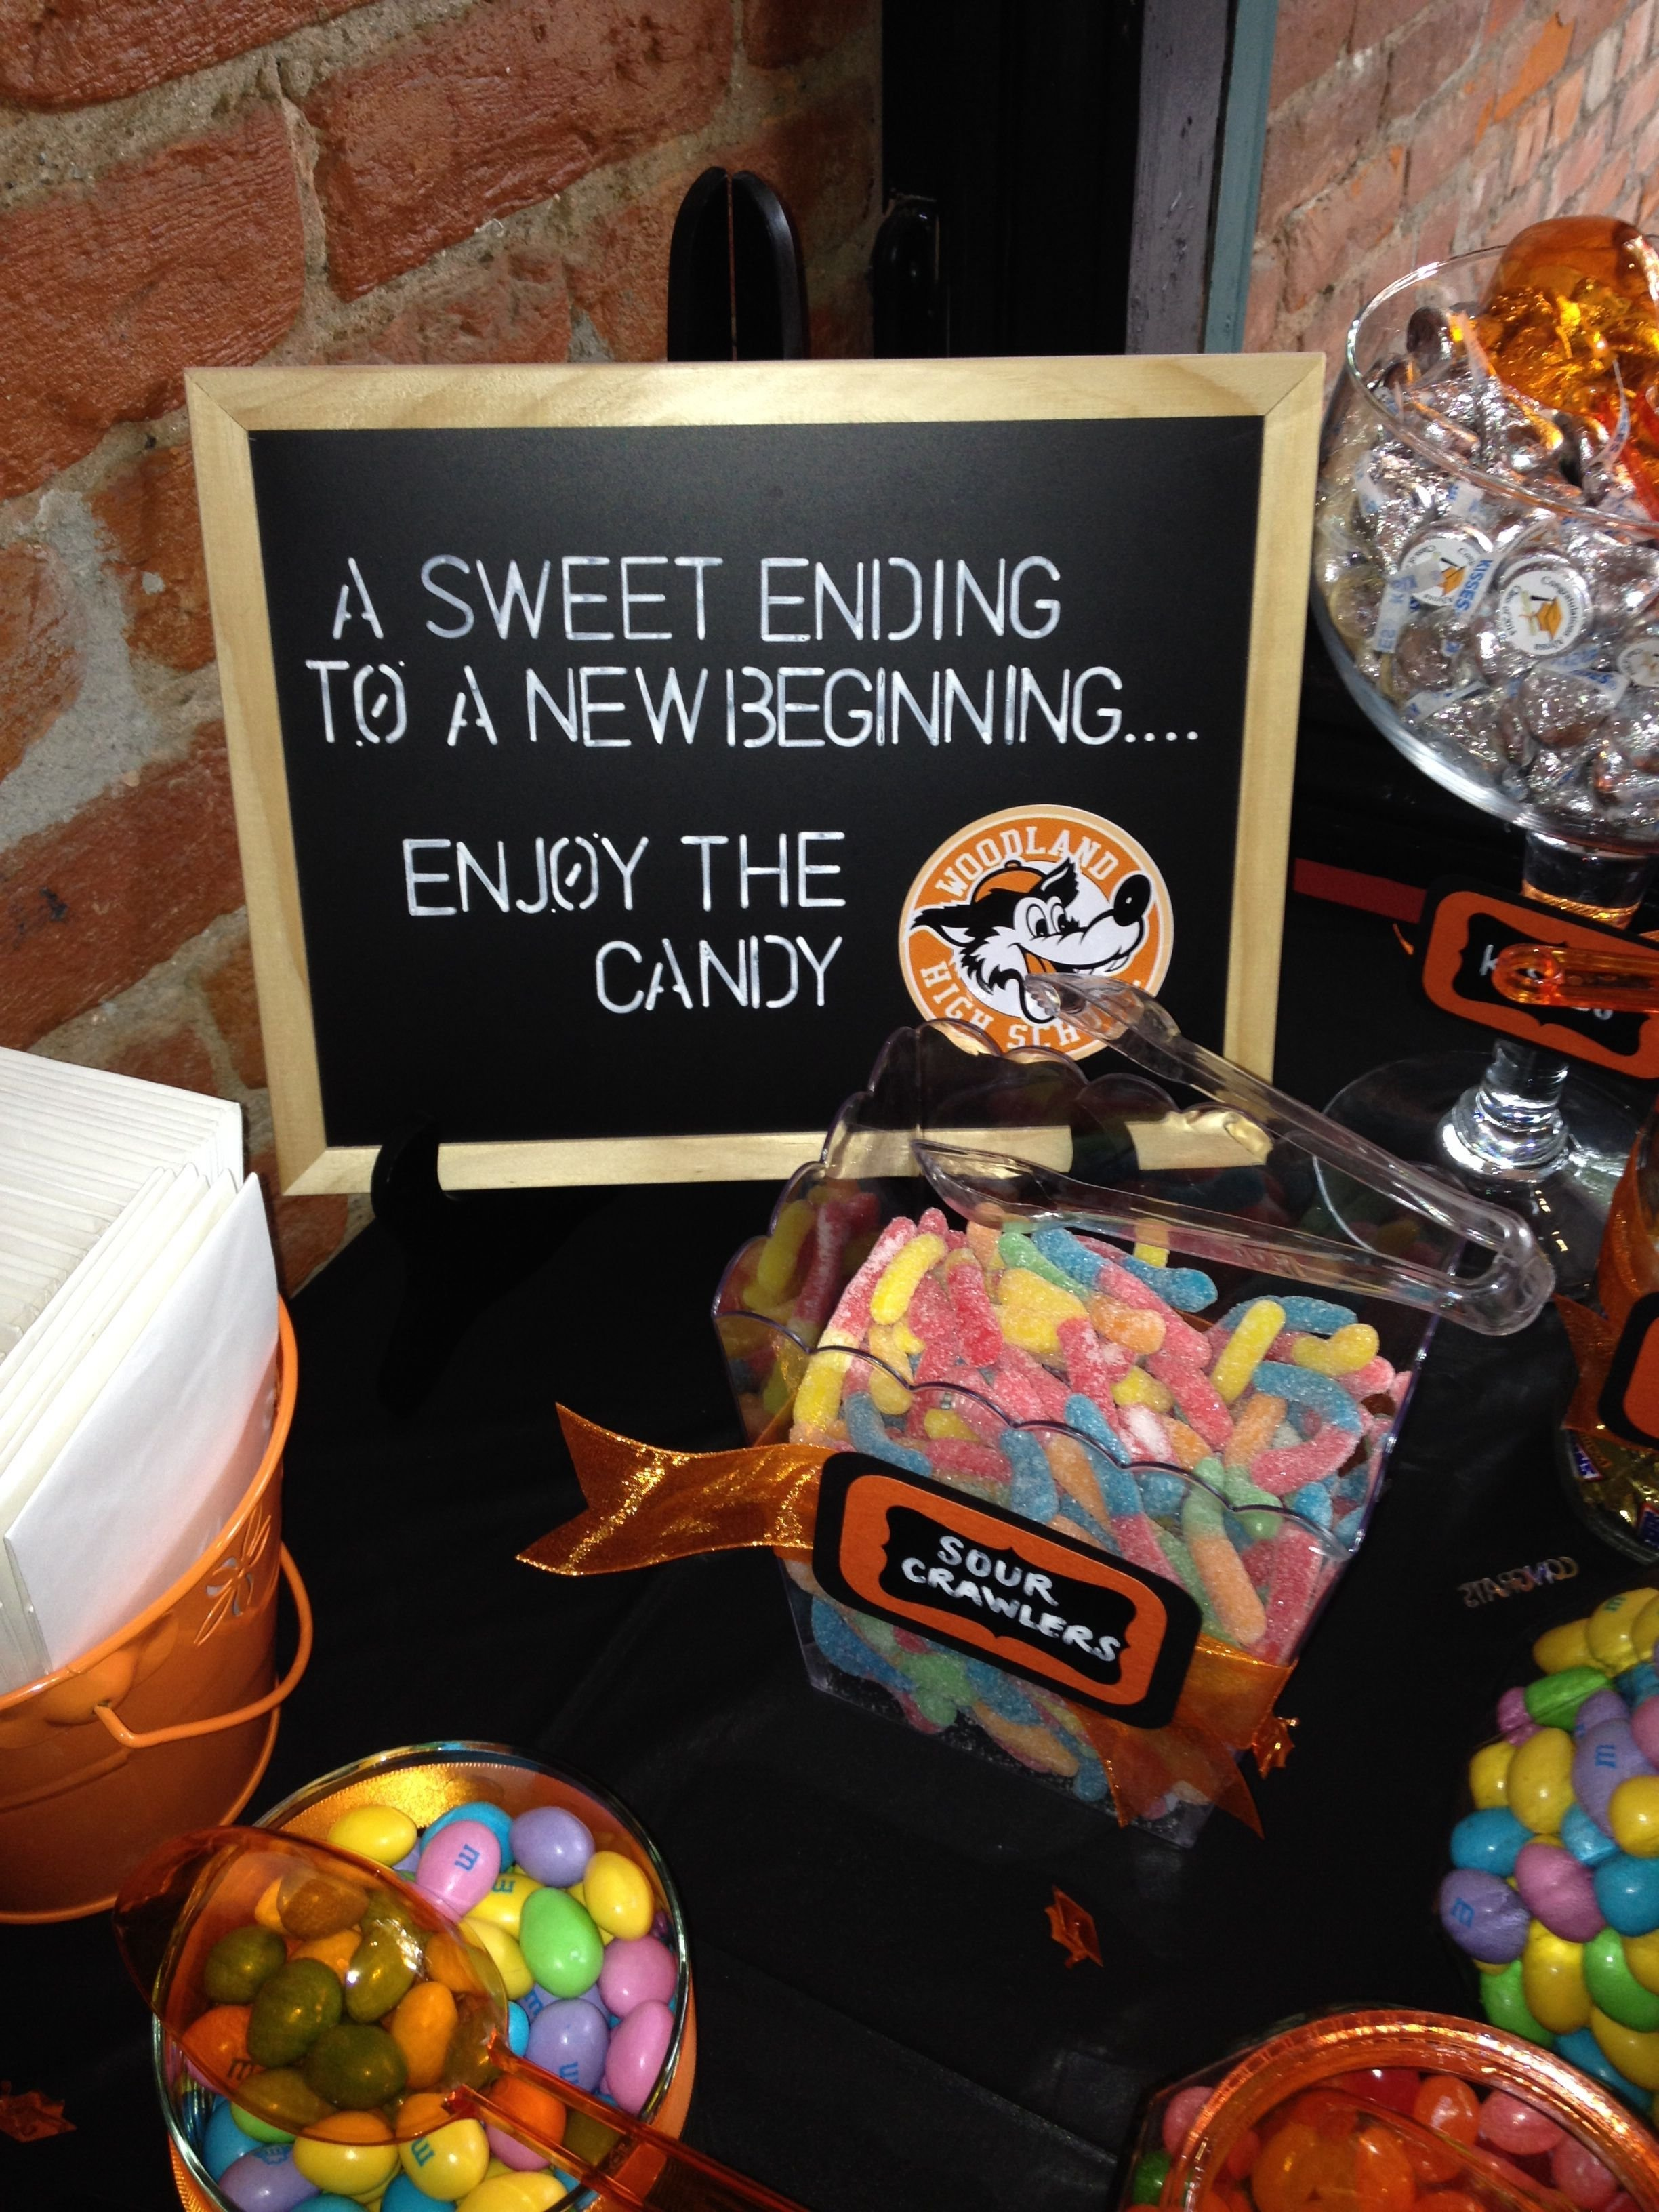 10 Great High School Graduation Party Ideas Pinterest graduation party ideas candy bar sign graduation decorations